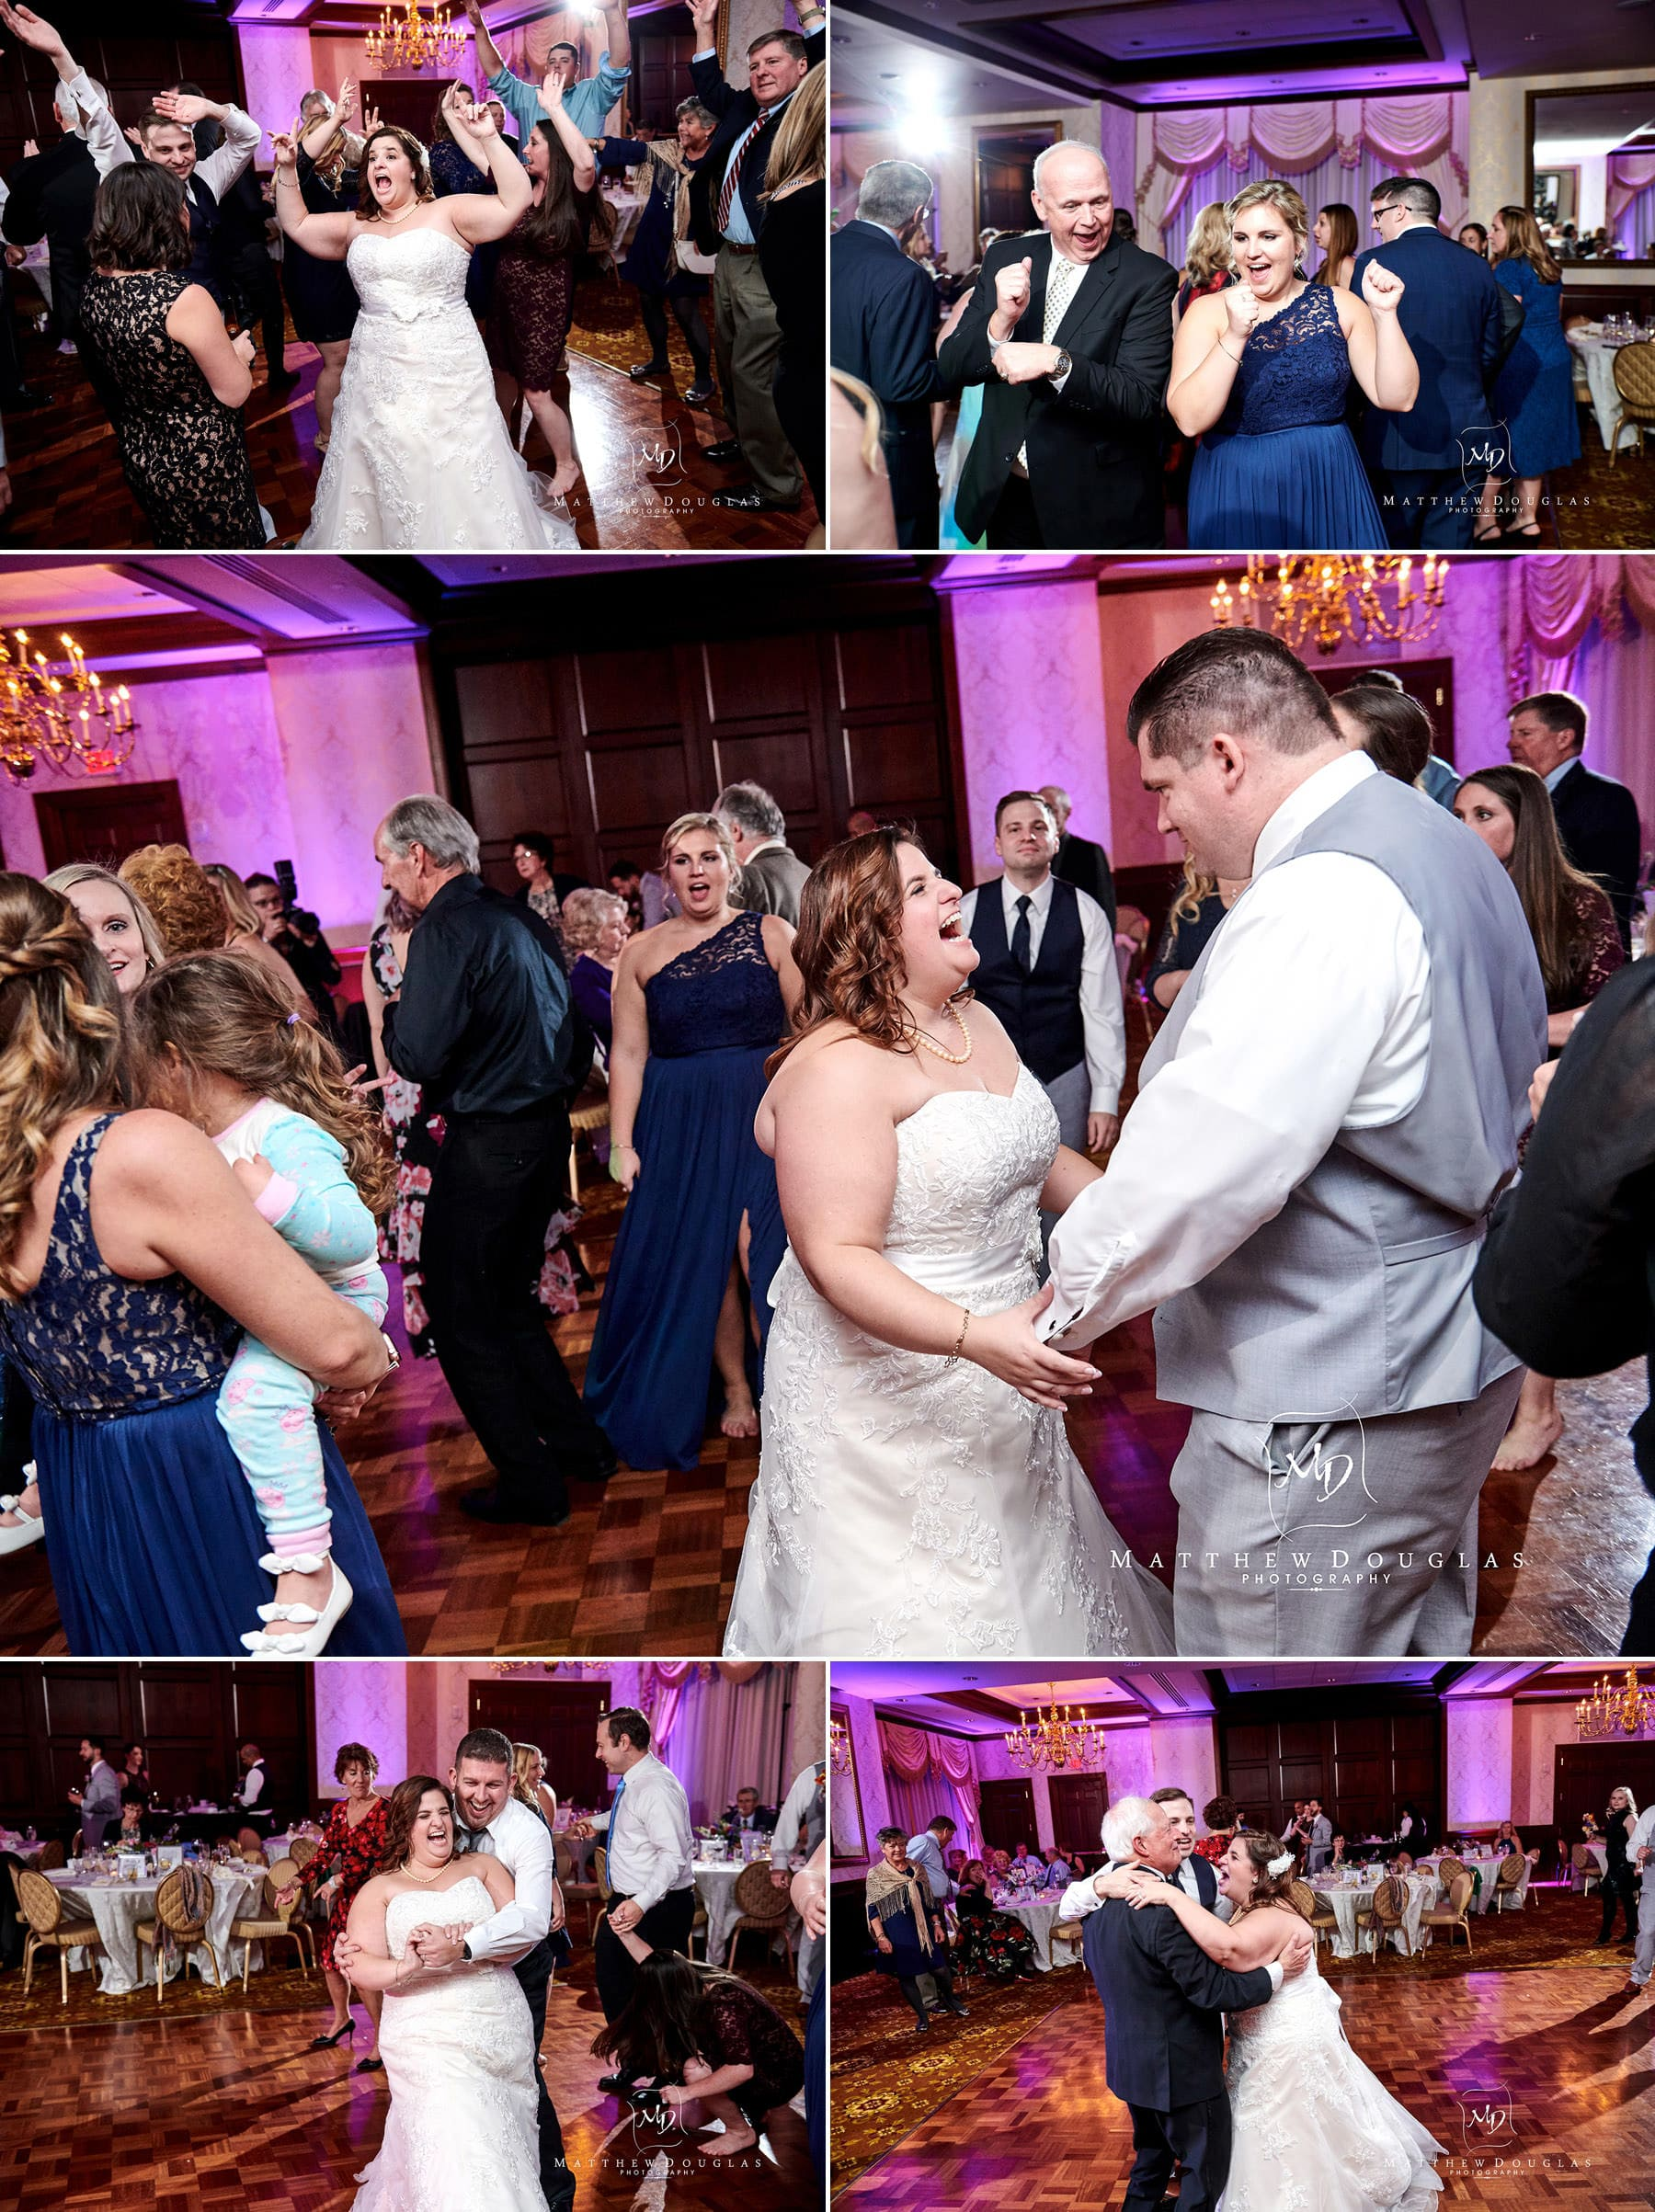 Nassau Inn wedding dance floor photos